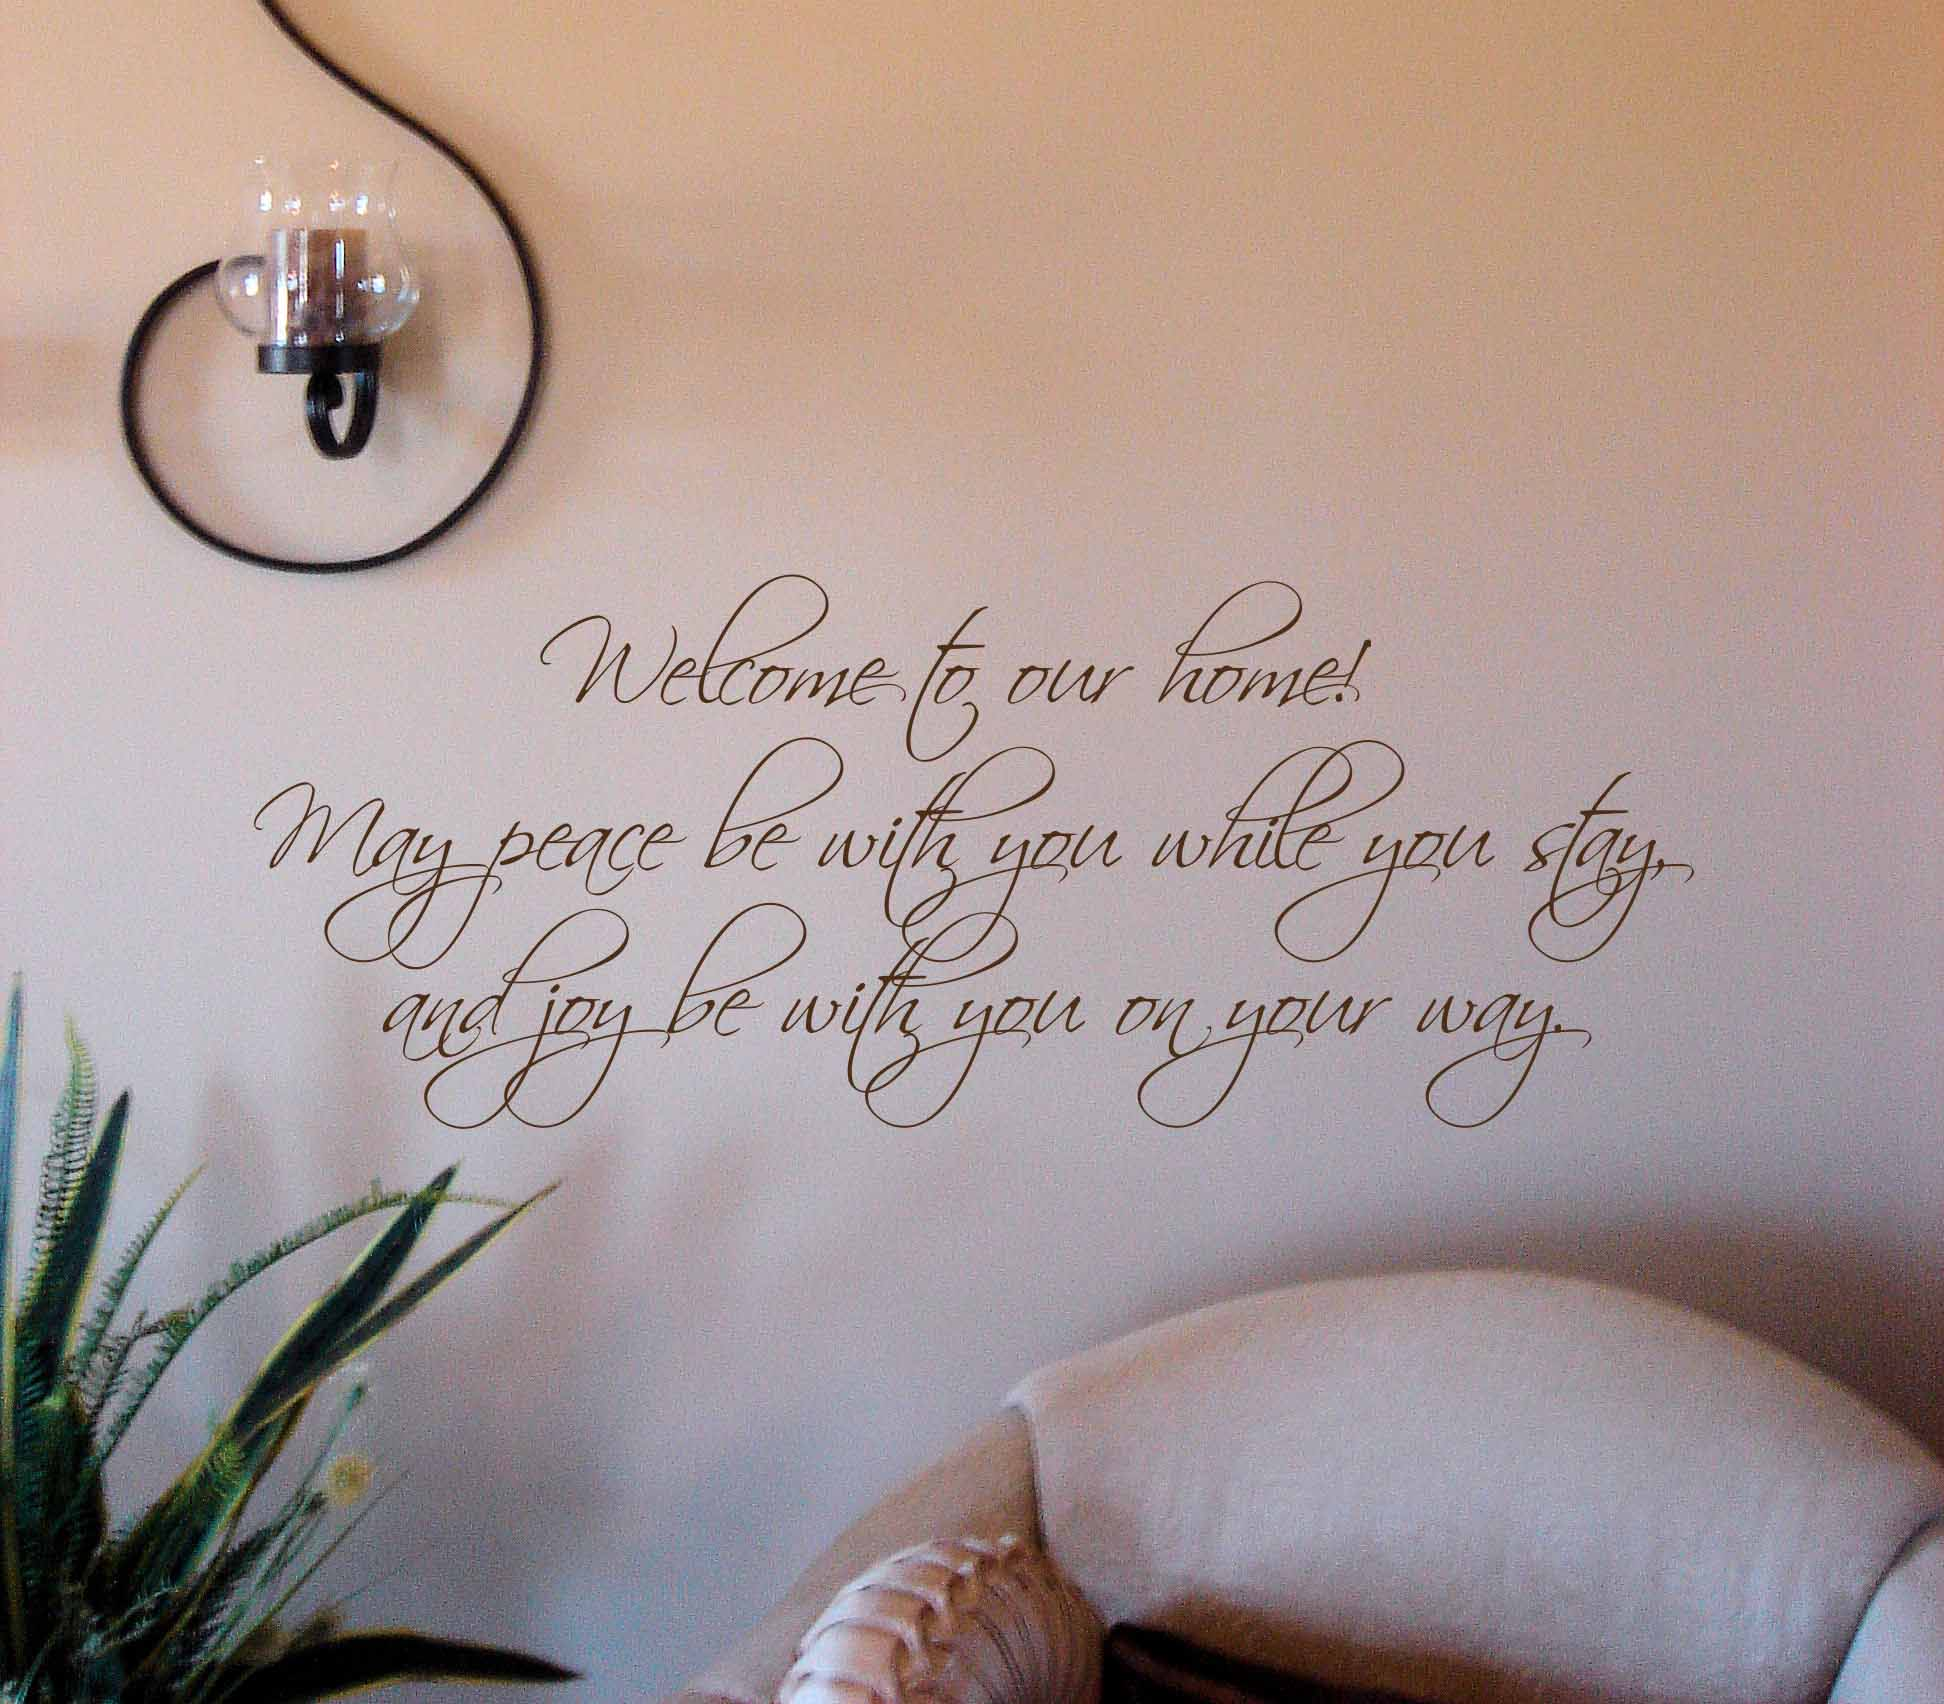 Peace While You Stay Wall Decal